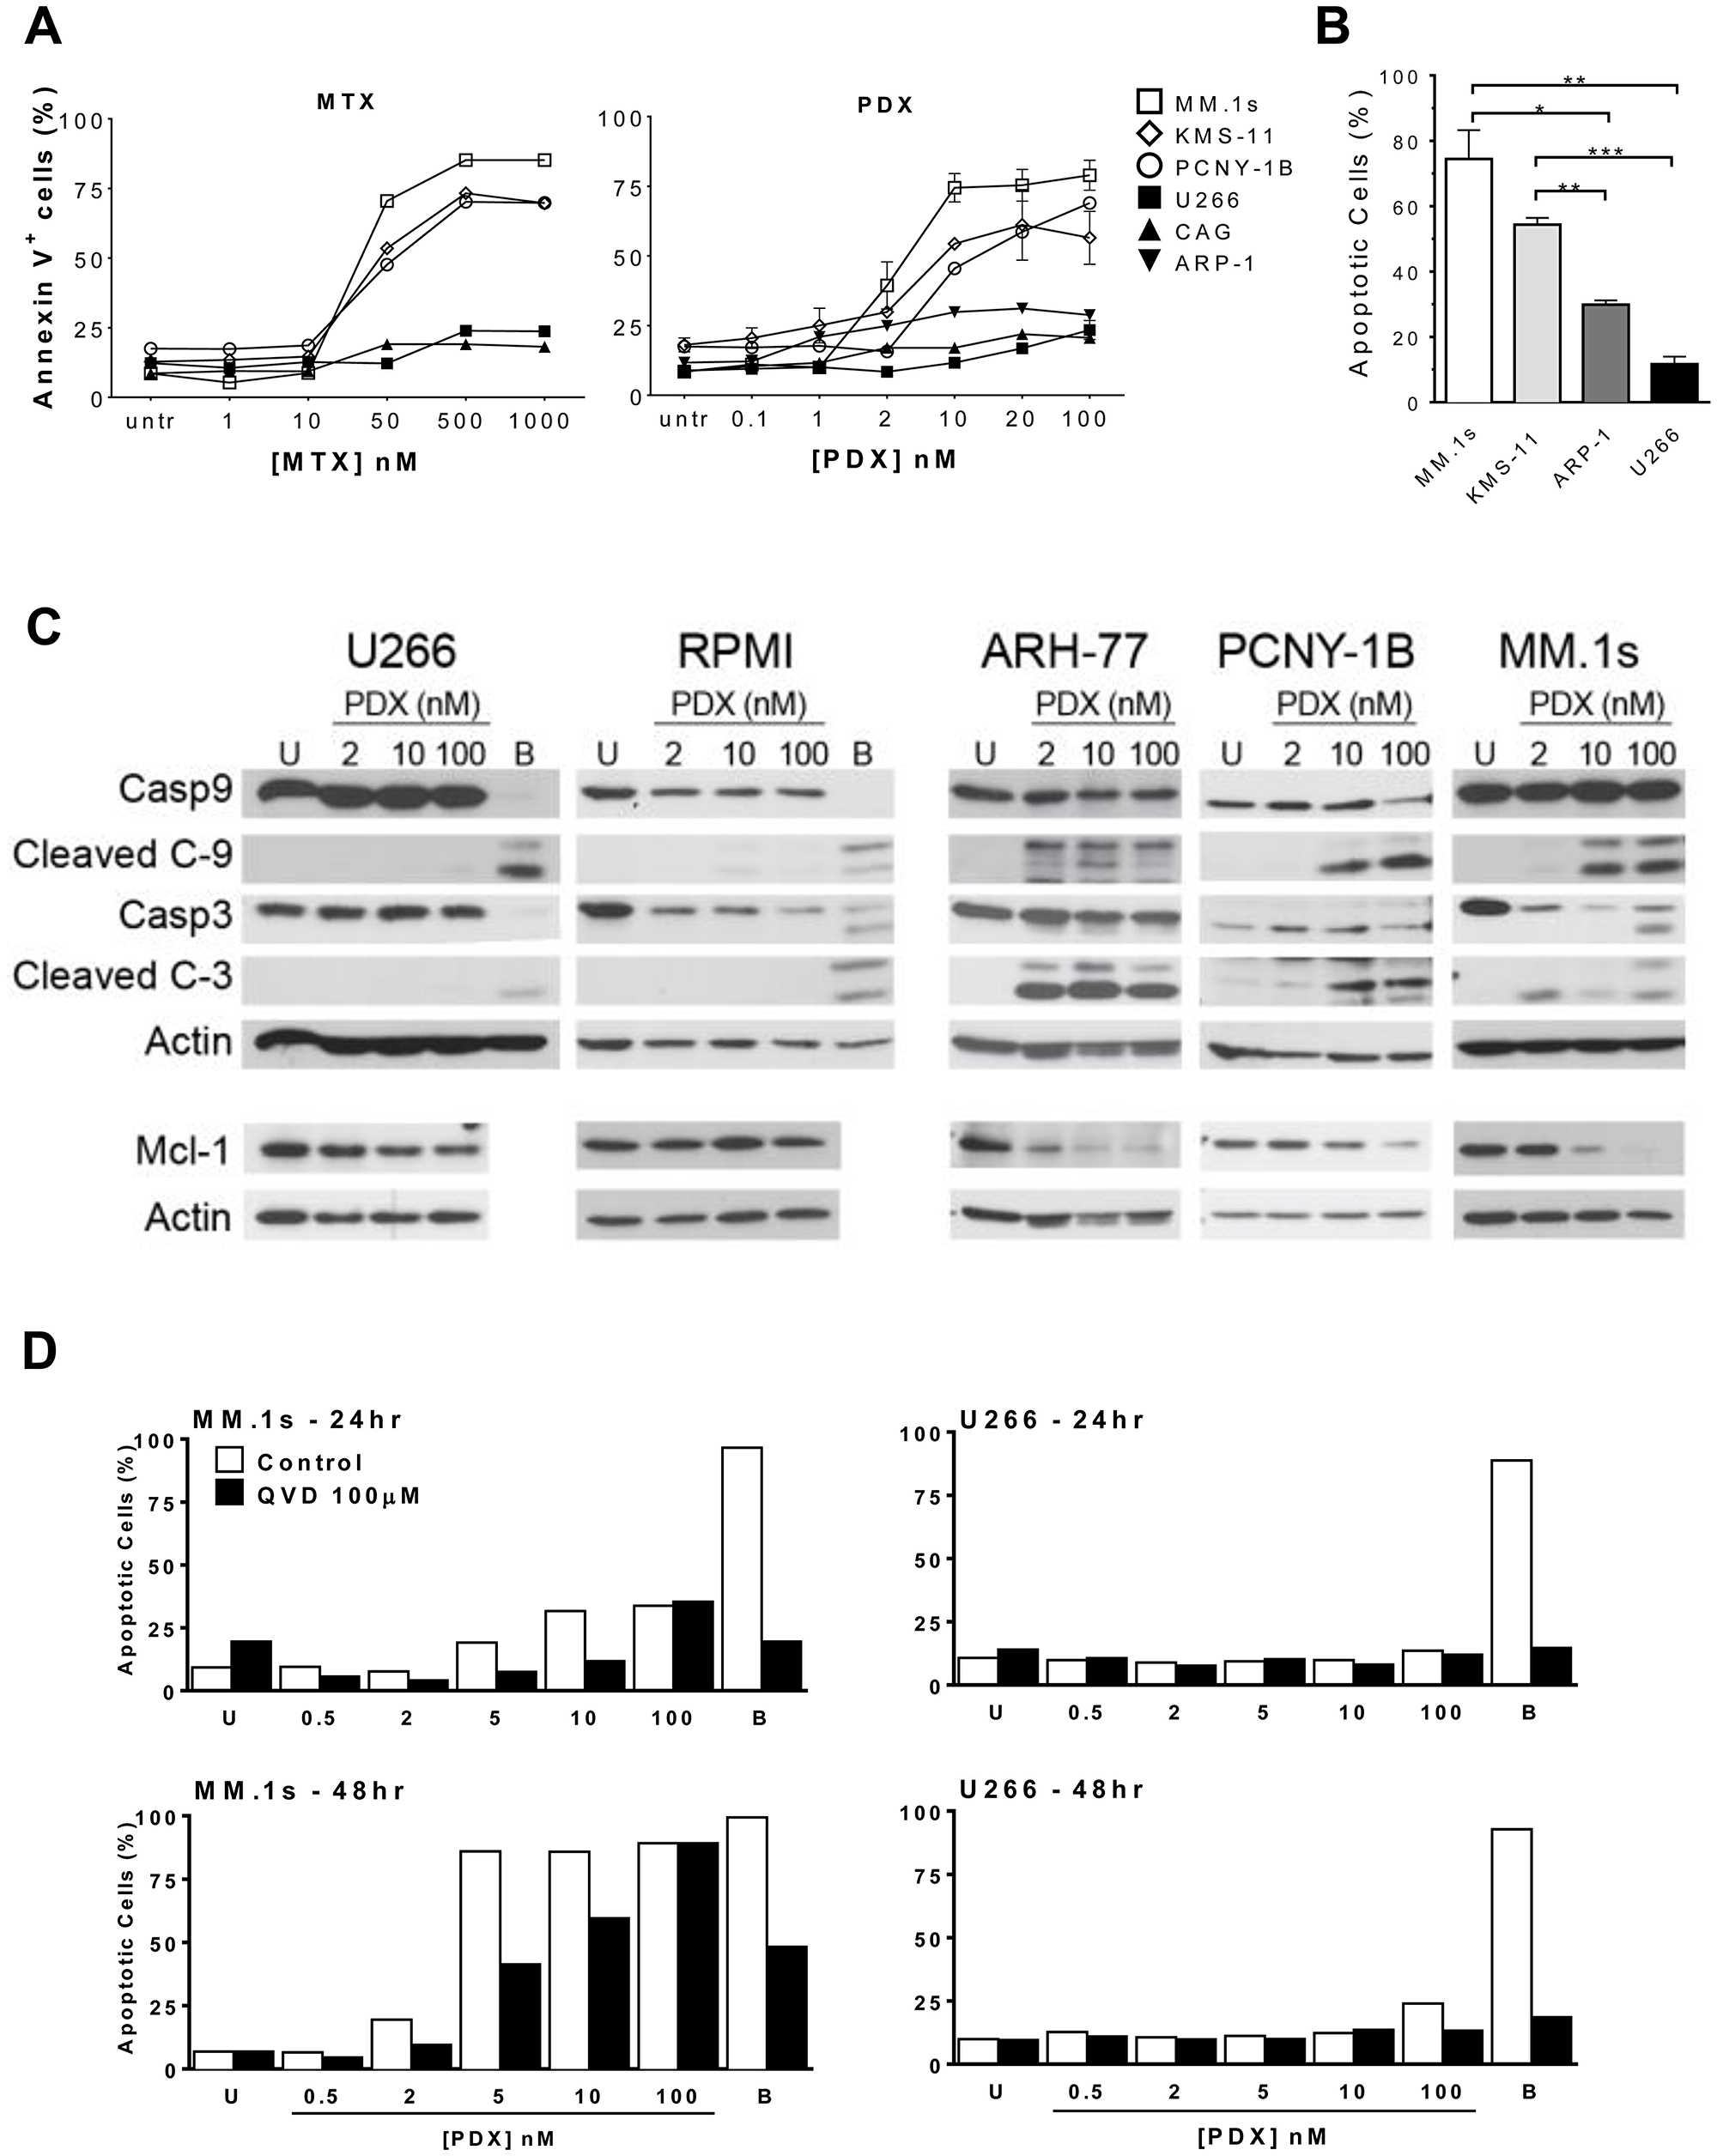 Antifolates induce apoptosis in a dose-dependent manner in sensitive HMCLs.